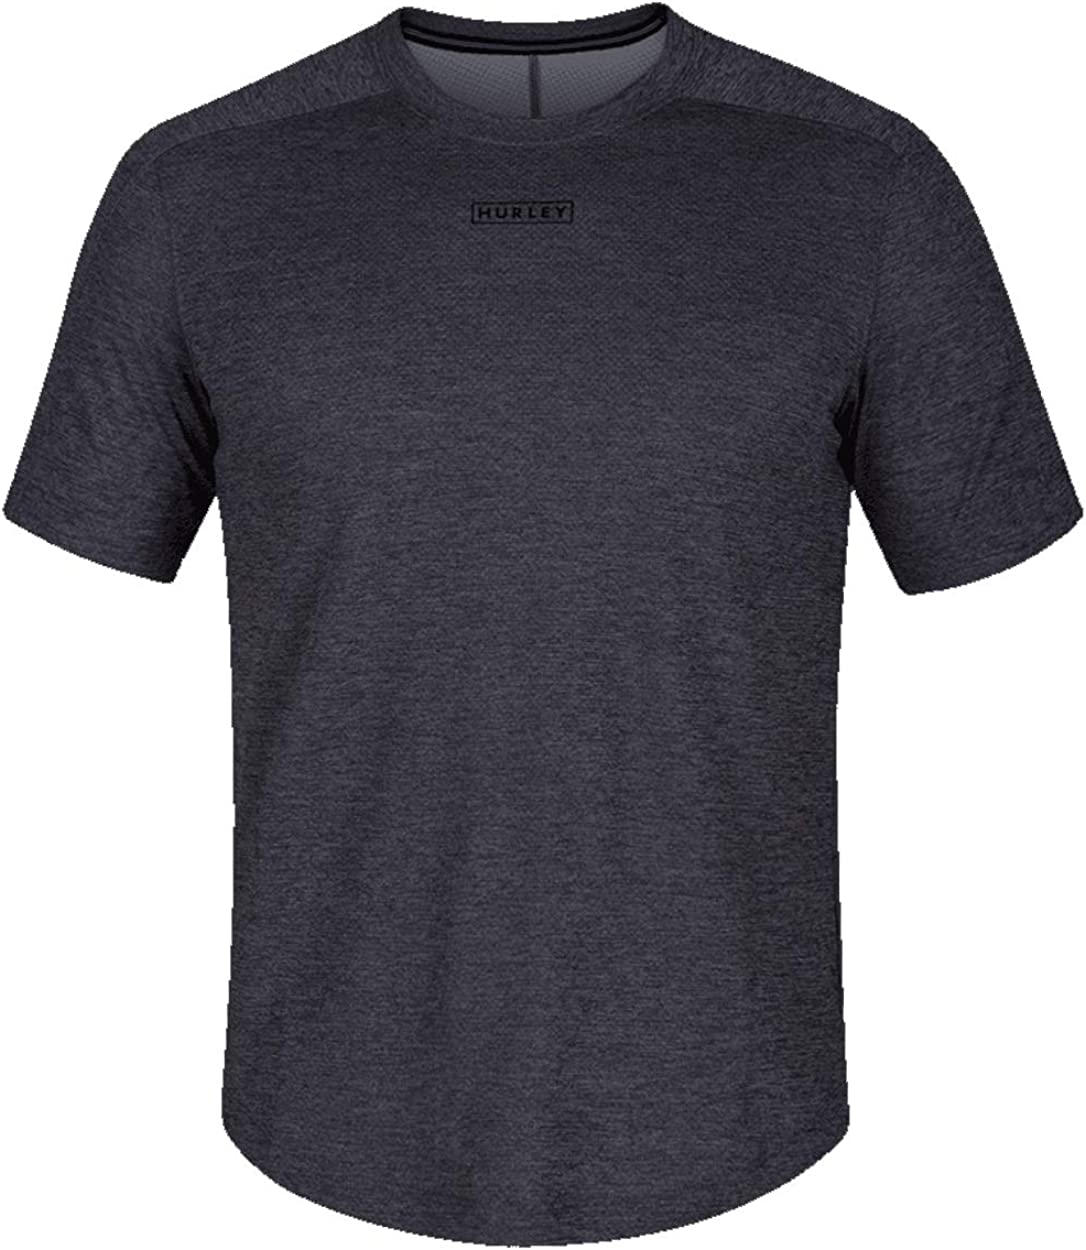 Hurley Mens Royal Blue Quick Dry Breathe Short Sleeve Tee